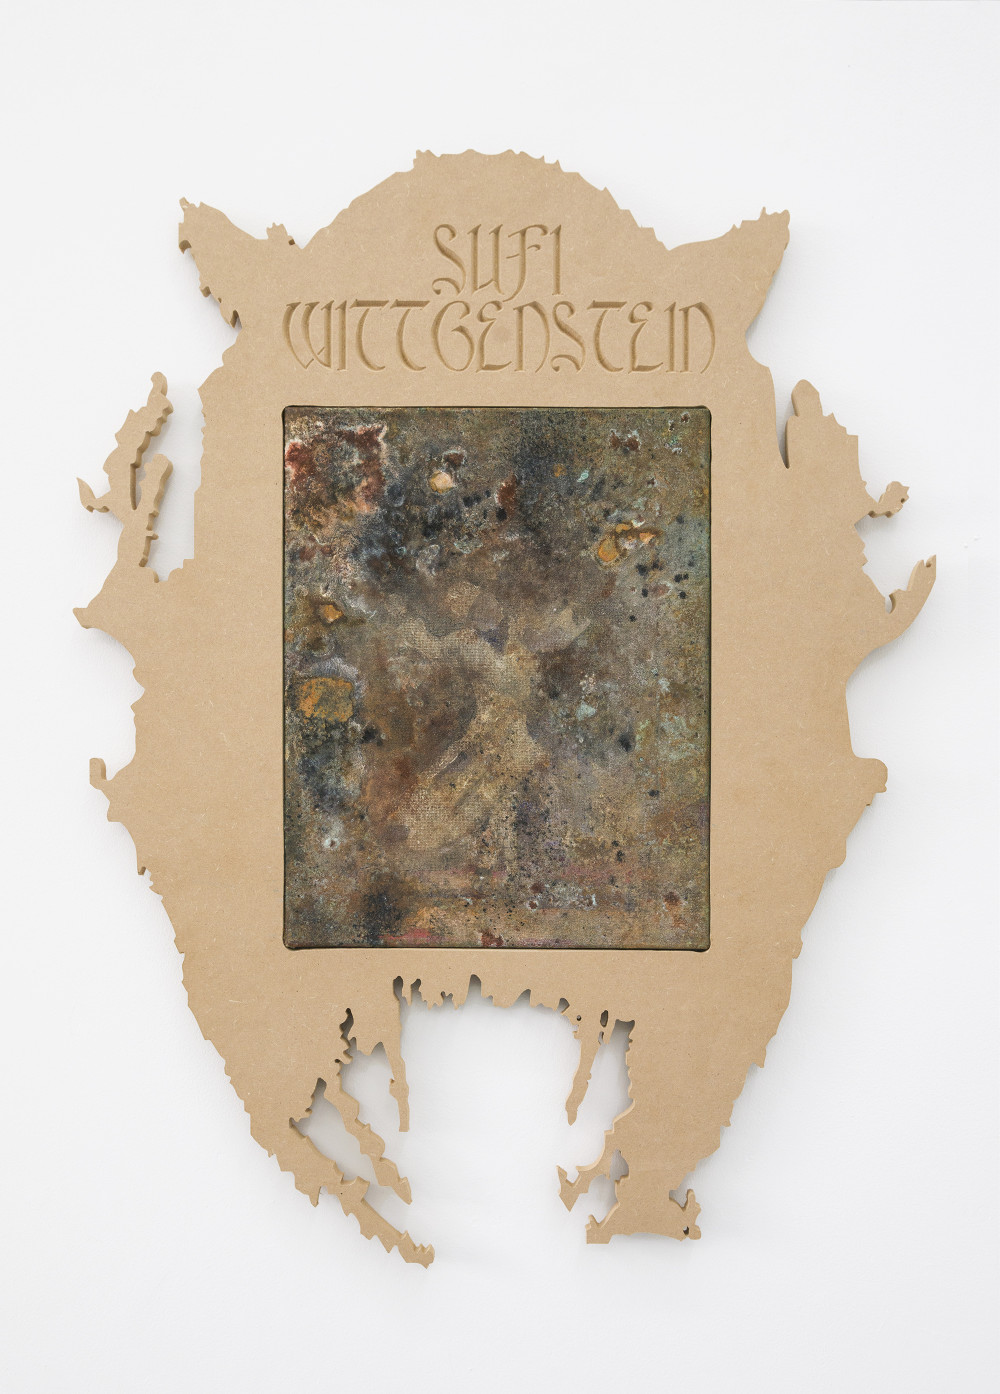 Nickolas Calabrese Muslim Wittgenstein, 2015 MDF Frame, Acrylic, Ink, Iron, Copper, Bronze on Canvas